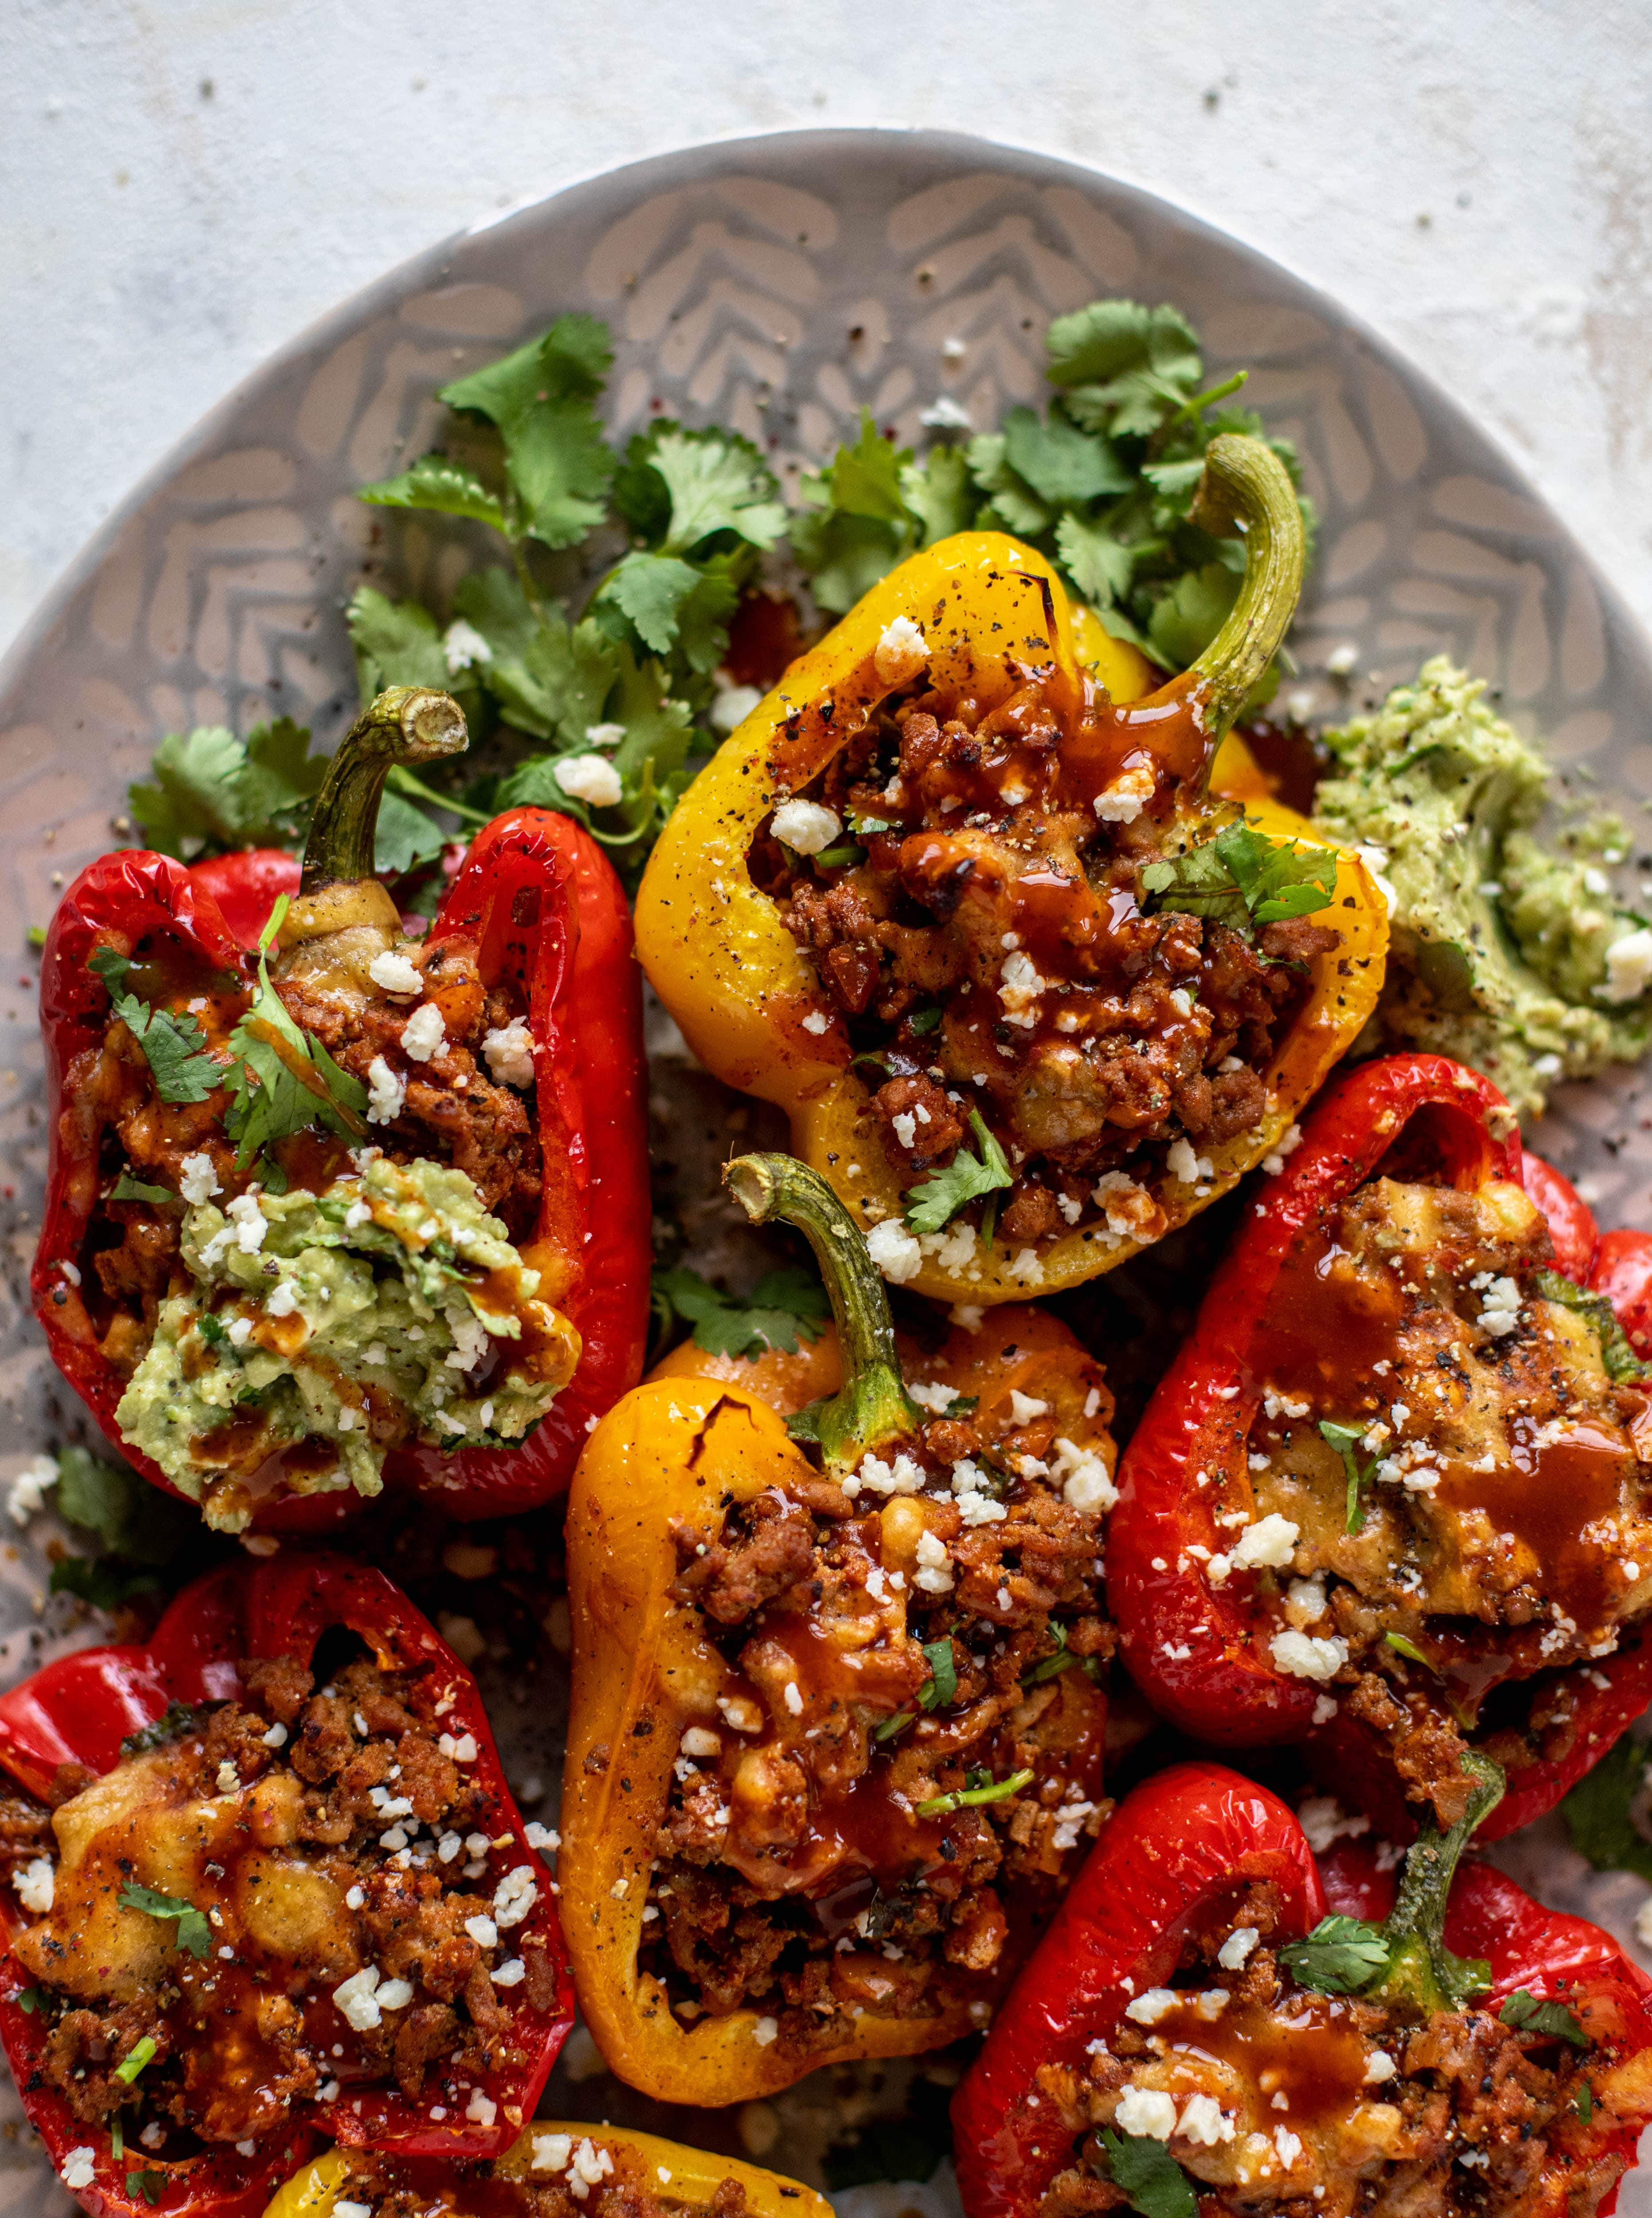 My favorite ground turkey taco stuffed peppers are the best weeknight meal! The turkey is flavorful and juicy. The peppers are deliciously roasted. Yum!